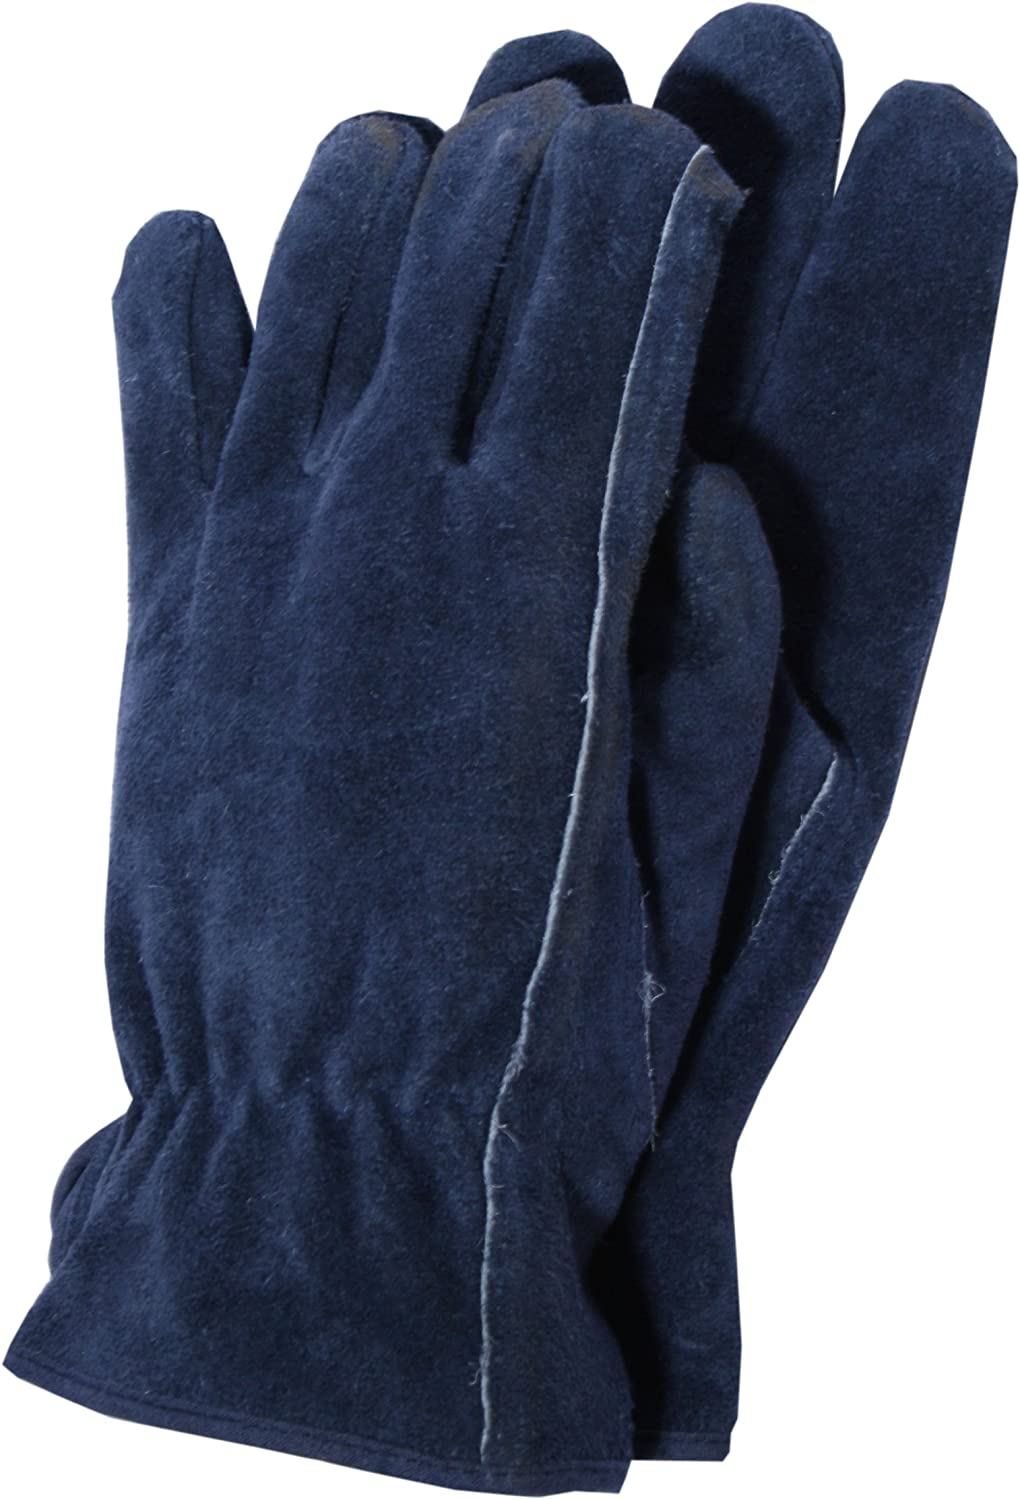 af3f5ab60 Amazon.com: Town And Country Tgl407L Premium Leather Gloves Mens - Large:  Home Improvement